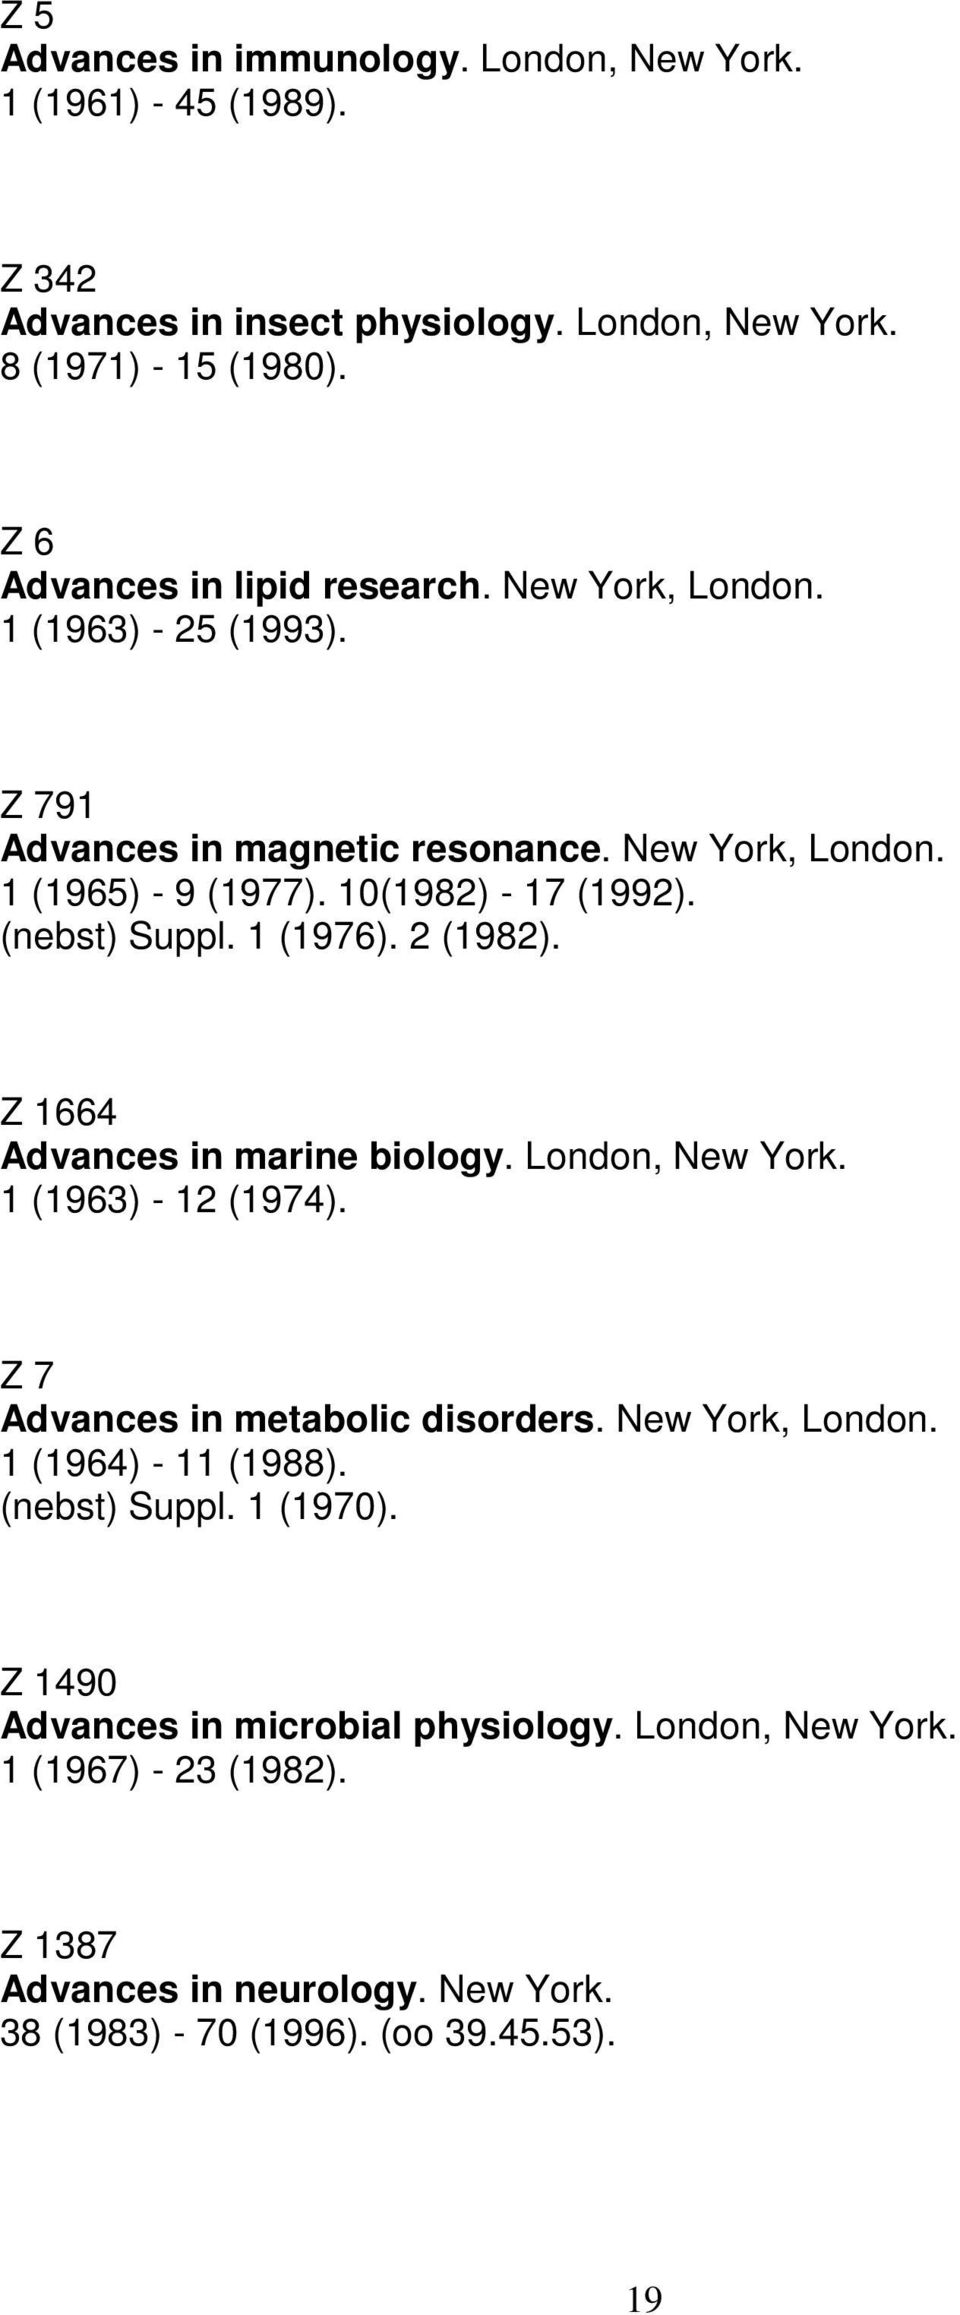 10(1982) - 17 (1992). 1 (1976). 2 (1982). Z 1664 Advances in marine biology. London, New York. 1 (1963) - 12 (1974). Z 7 Advances in metabolic disorders.